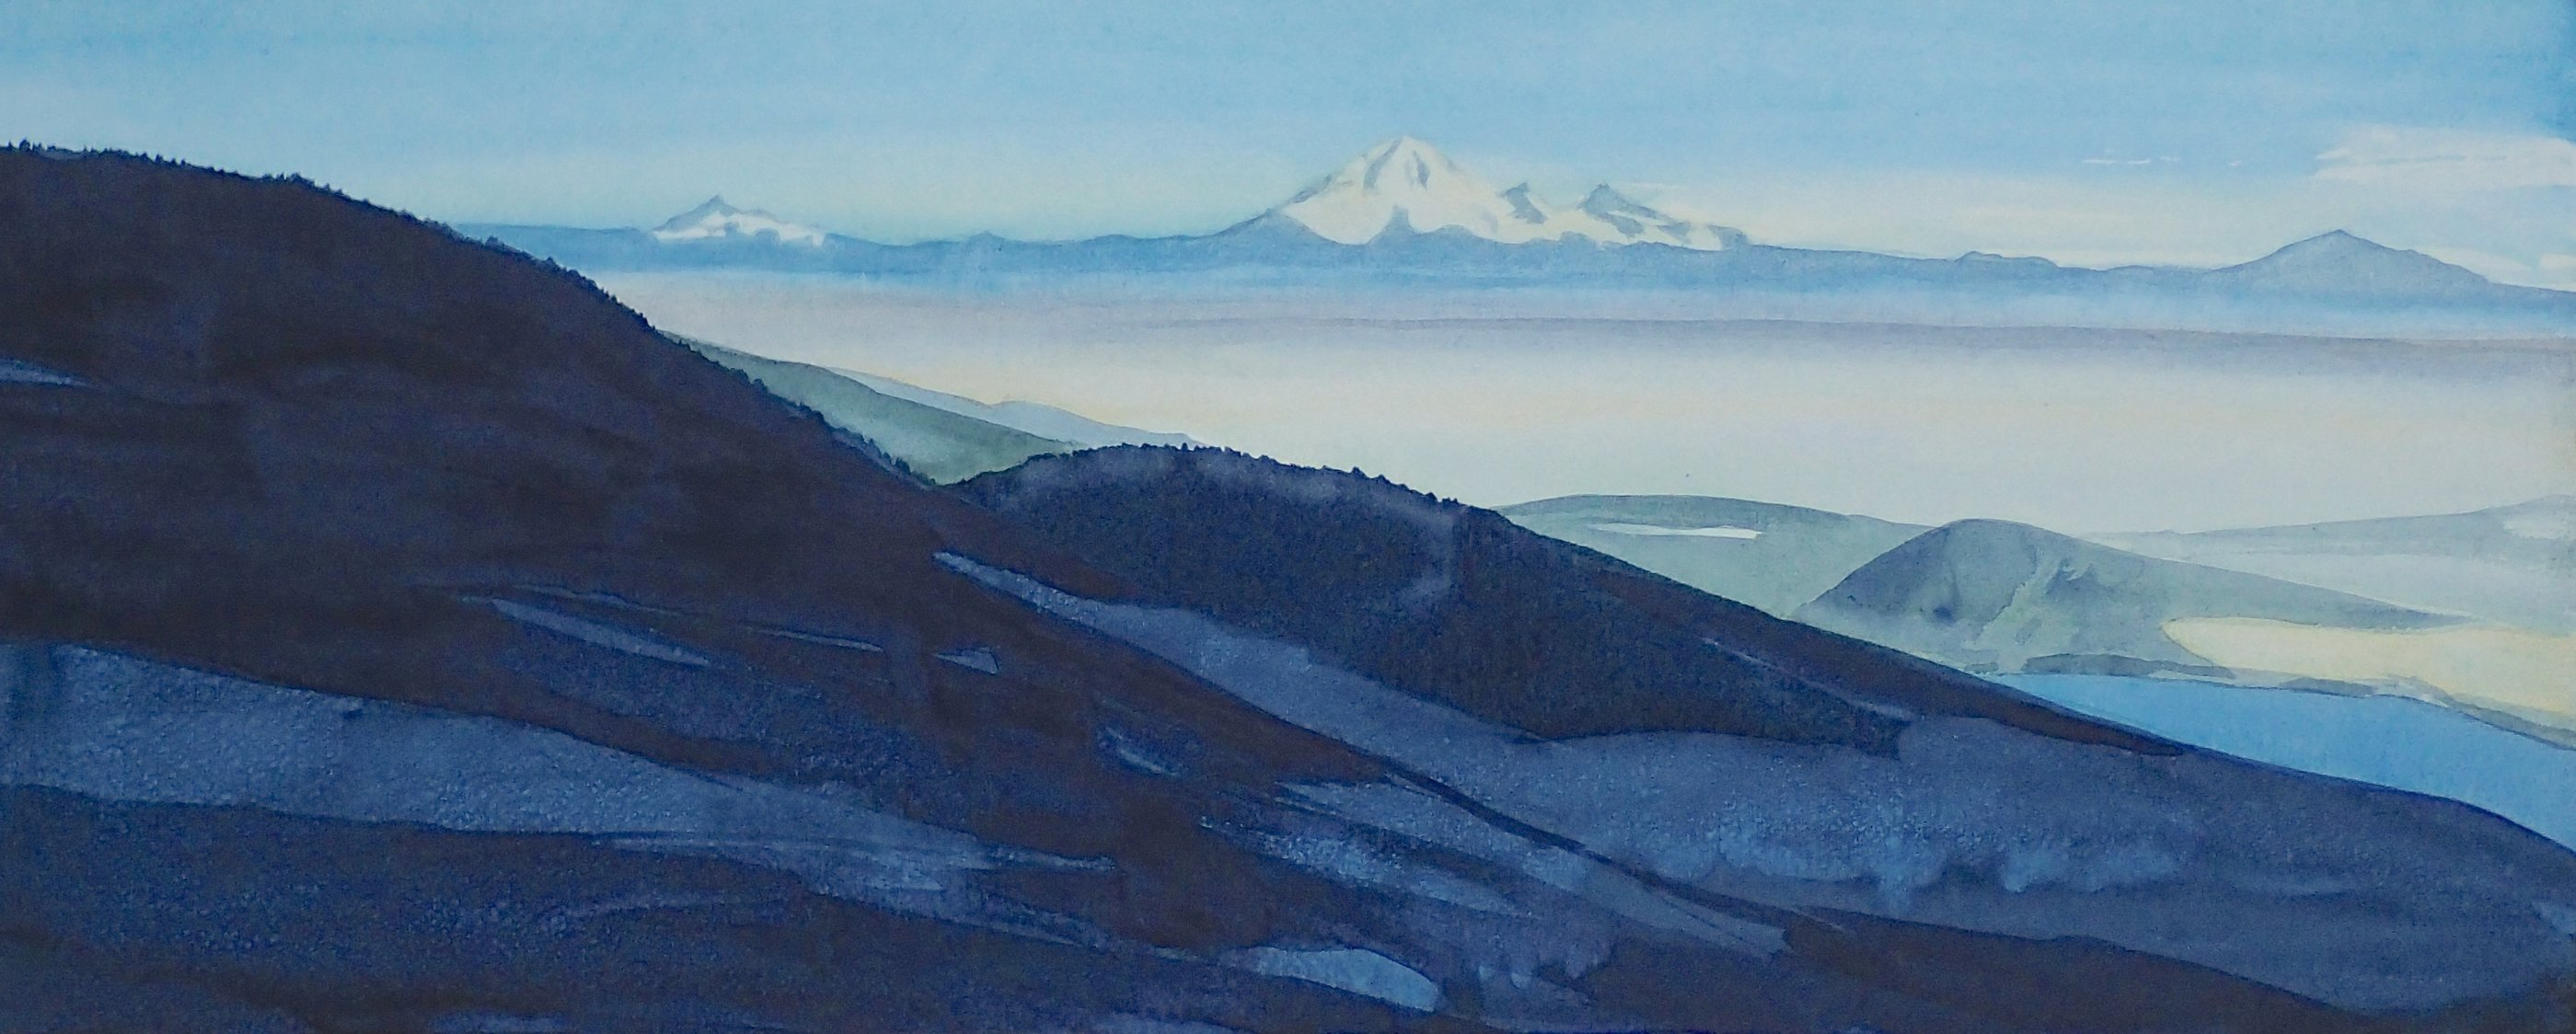 Baker from Grouse Mtn. (Sold)